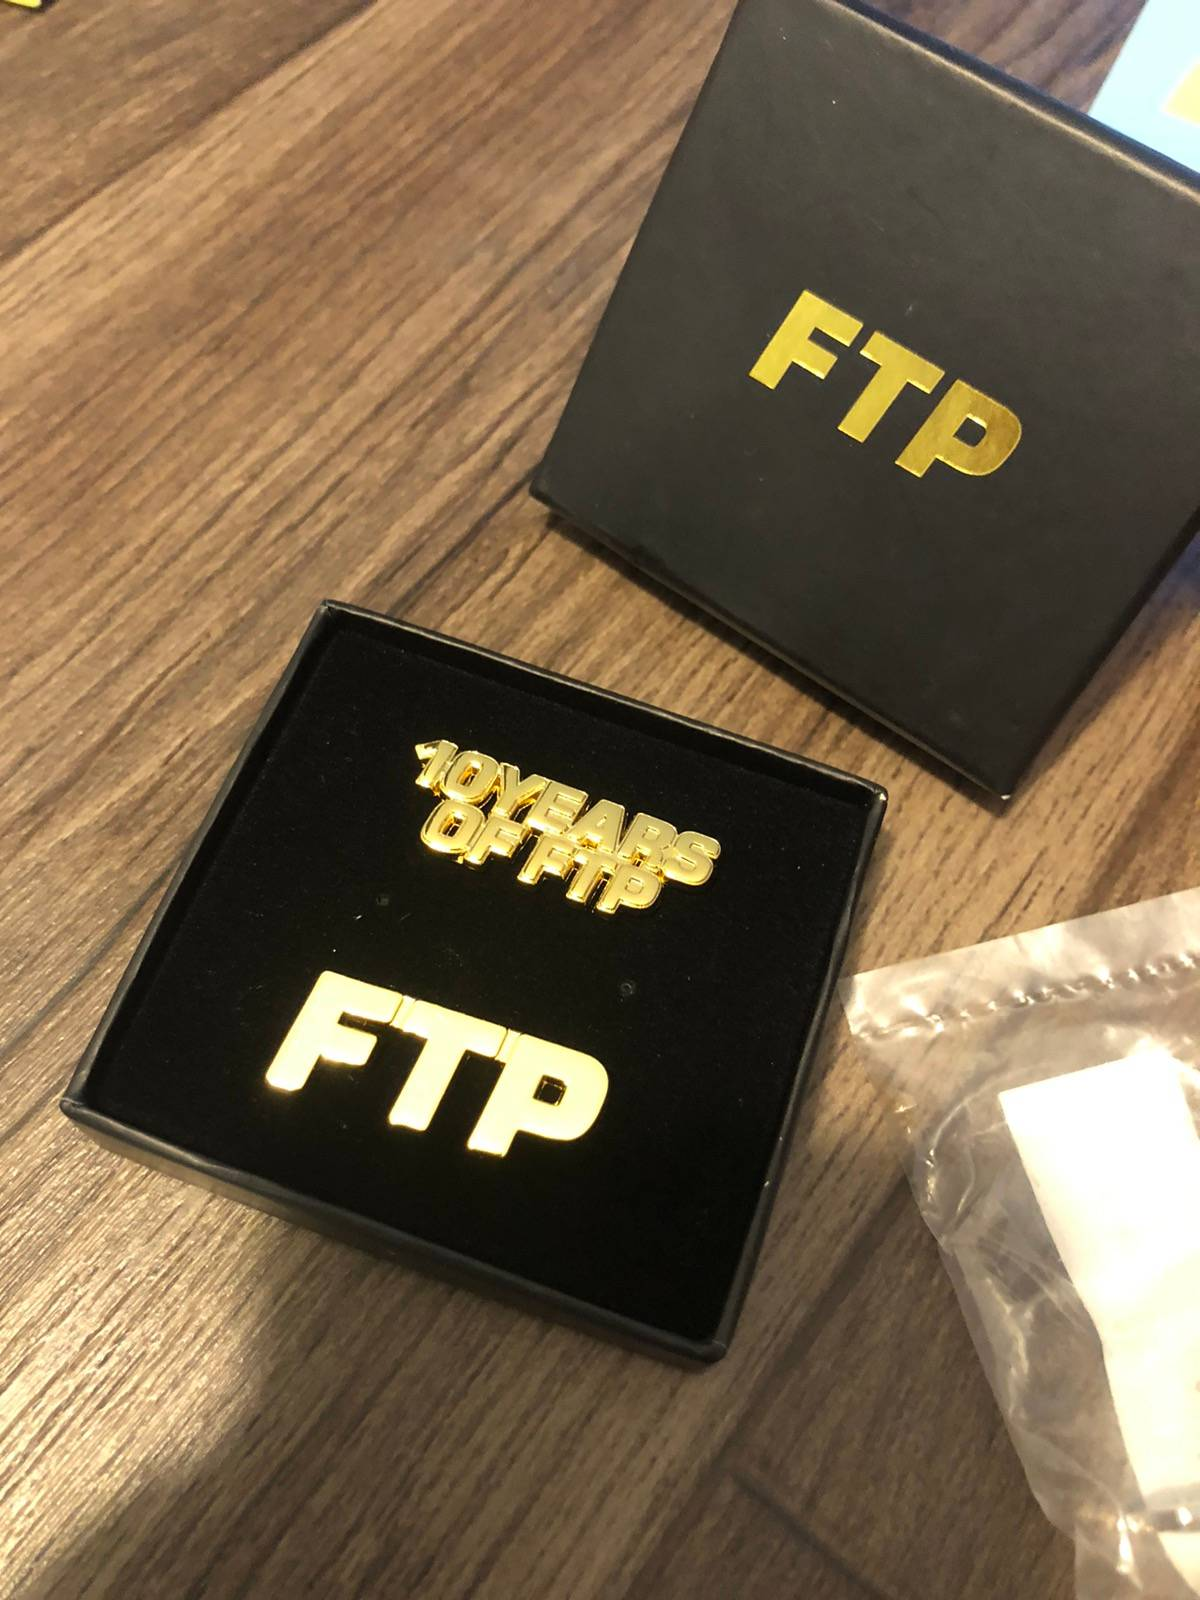 FTP Fuckthepopulation 10 Year Anniversary Logo Pin Set Brand New 2 Pins Together